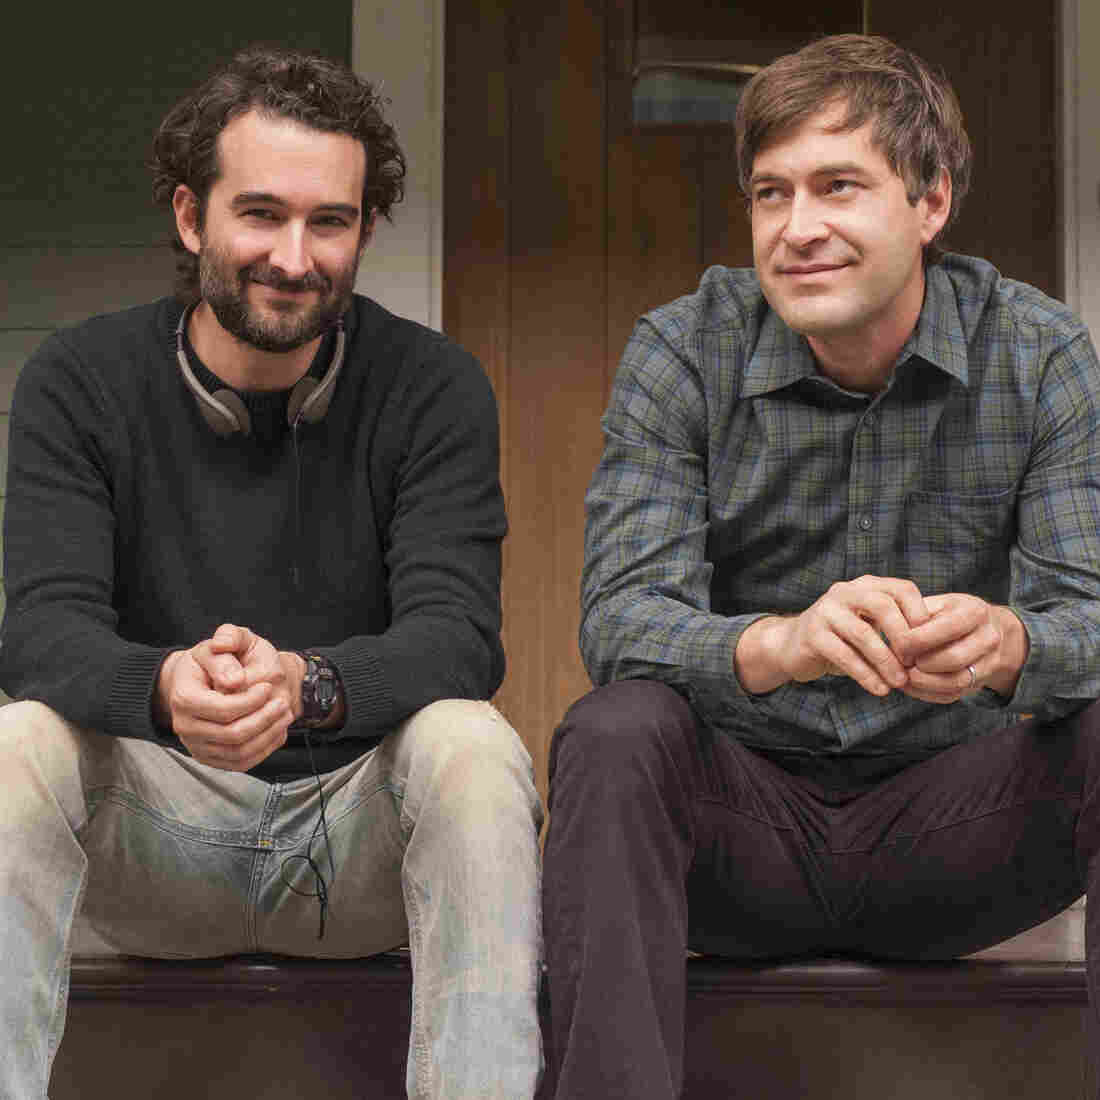 Duplass Brothers On Filmmaking, Siblings And Parenting's 'Fugue State'